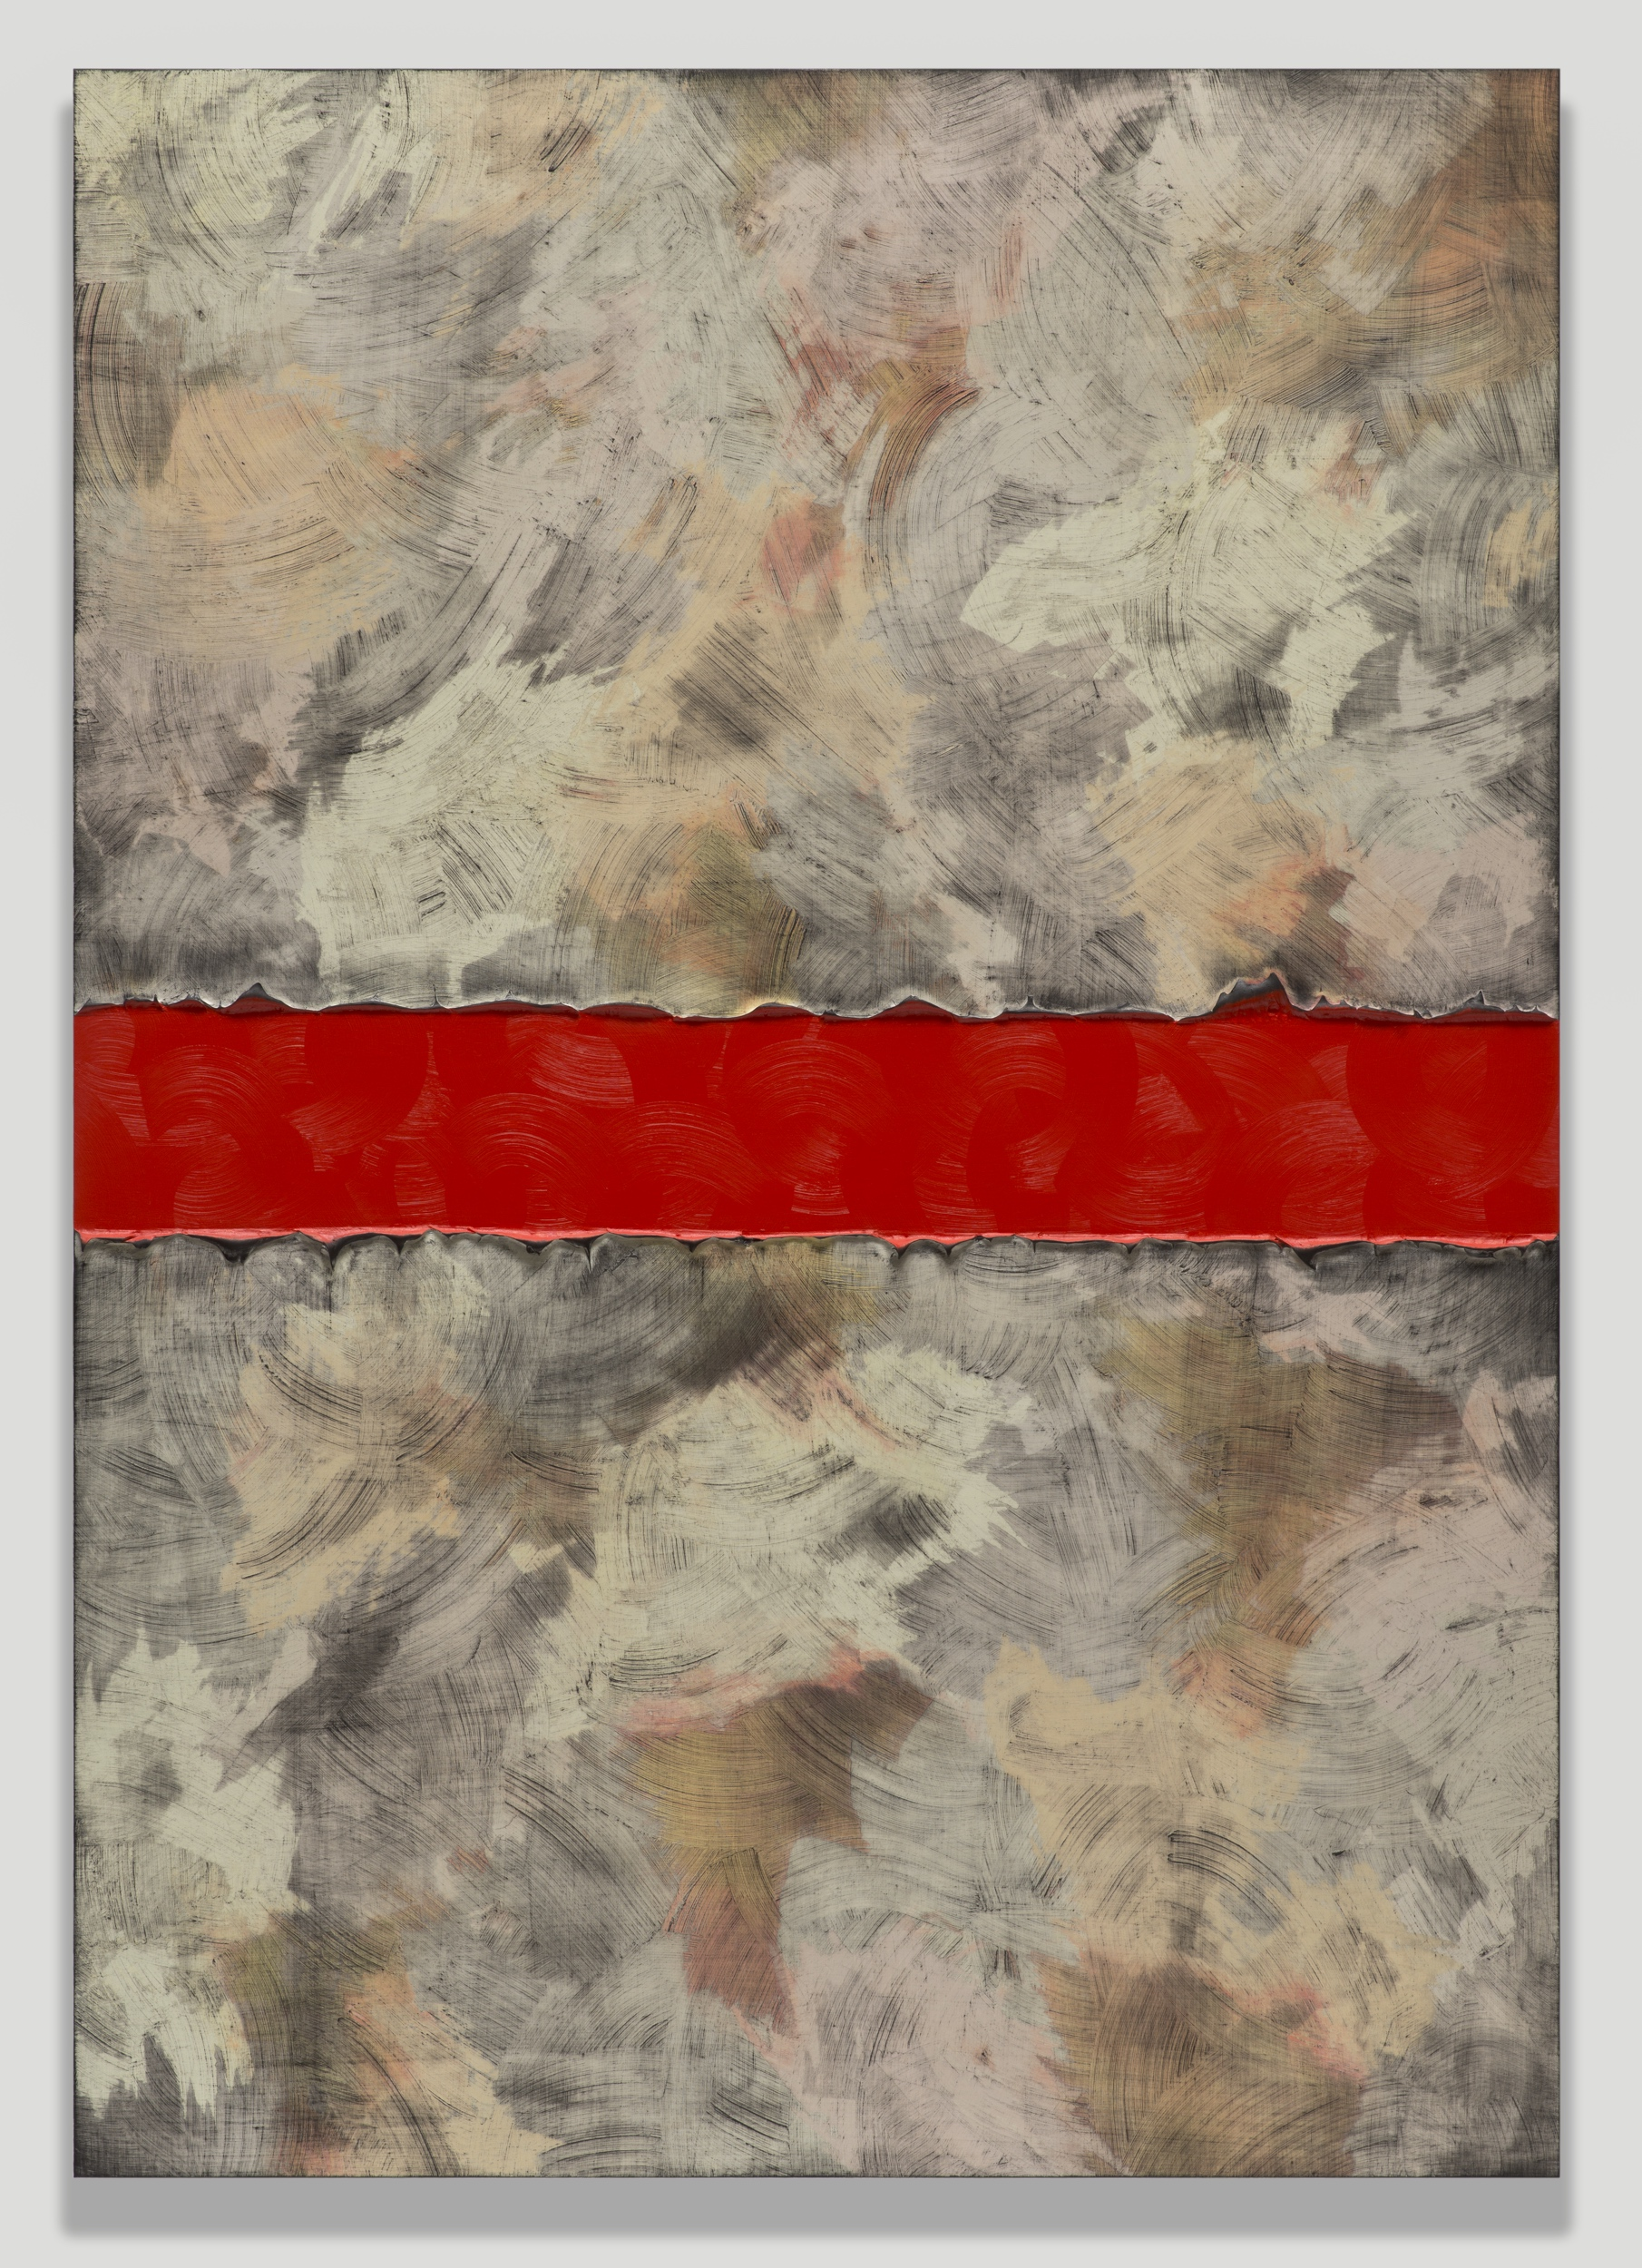 Alex Olson,  Proposal 18 , 2013, oil and modeling paste on linen, 61 x 43 inches (154.9 x 109.2 cm)